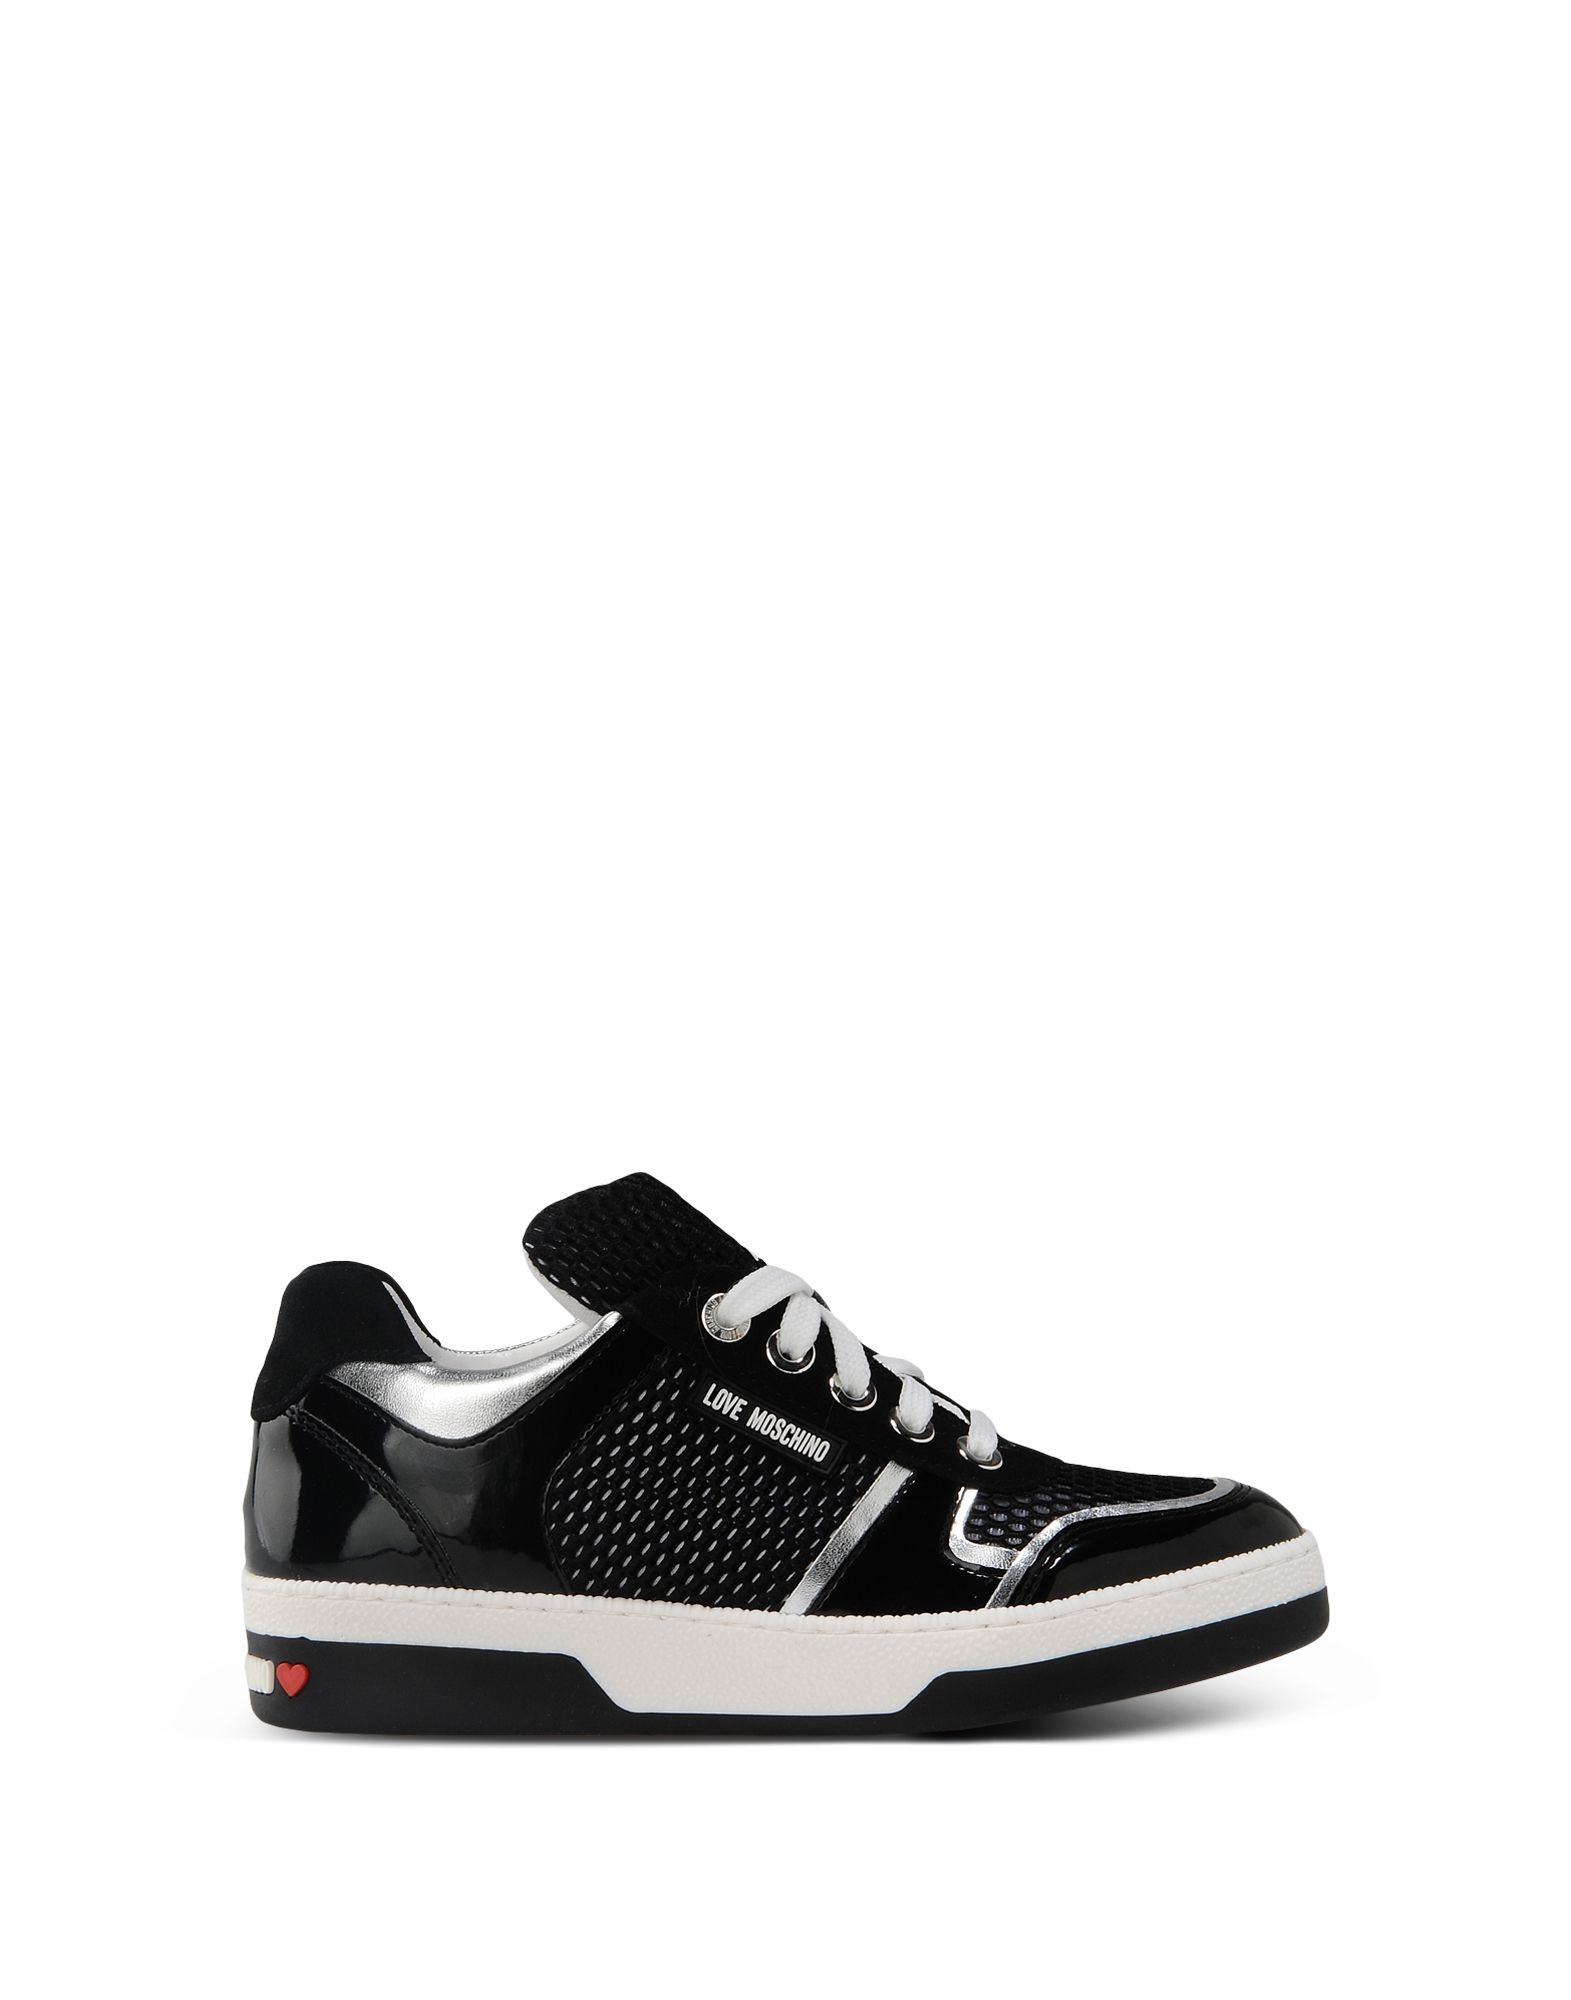 chion sport shoes 28 images best athletic shoes for